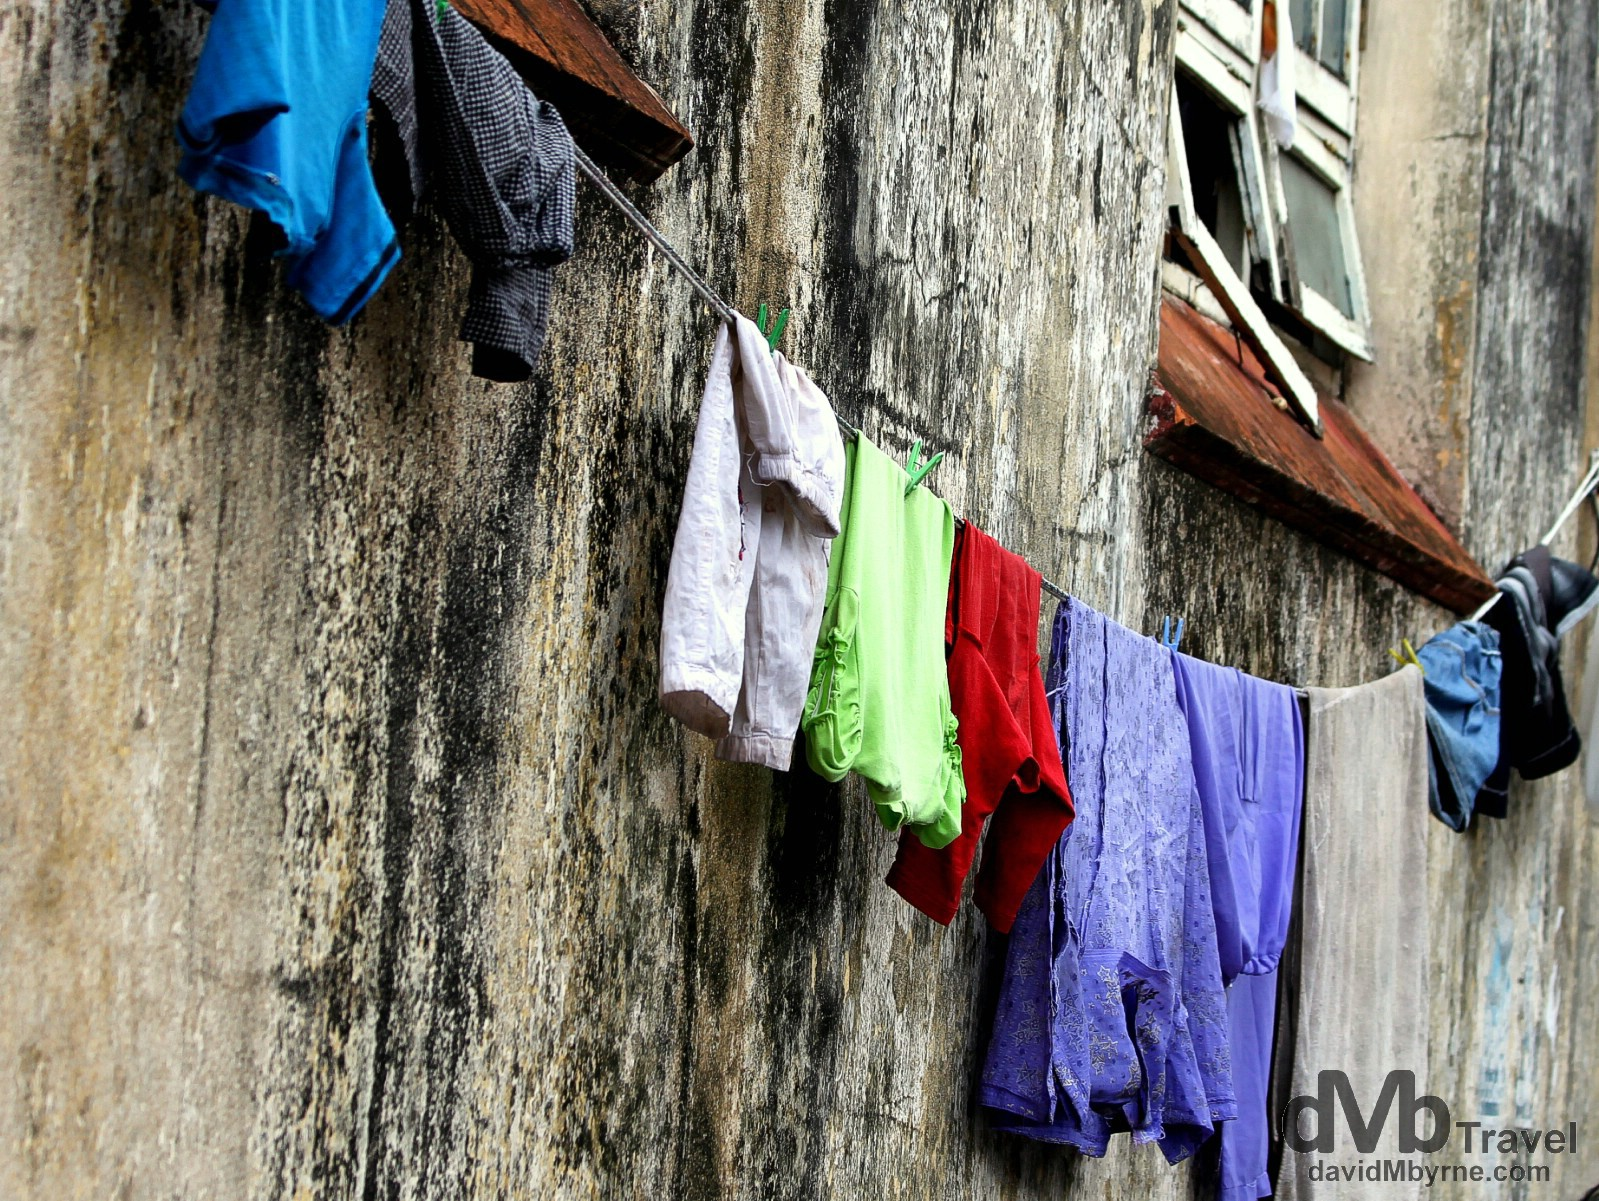 Laundry hanging outside a building in a lane of Galle's Fort, Galle, southern Sri Lanka. September 2nd 2012.